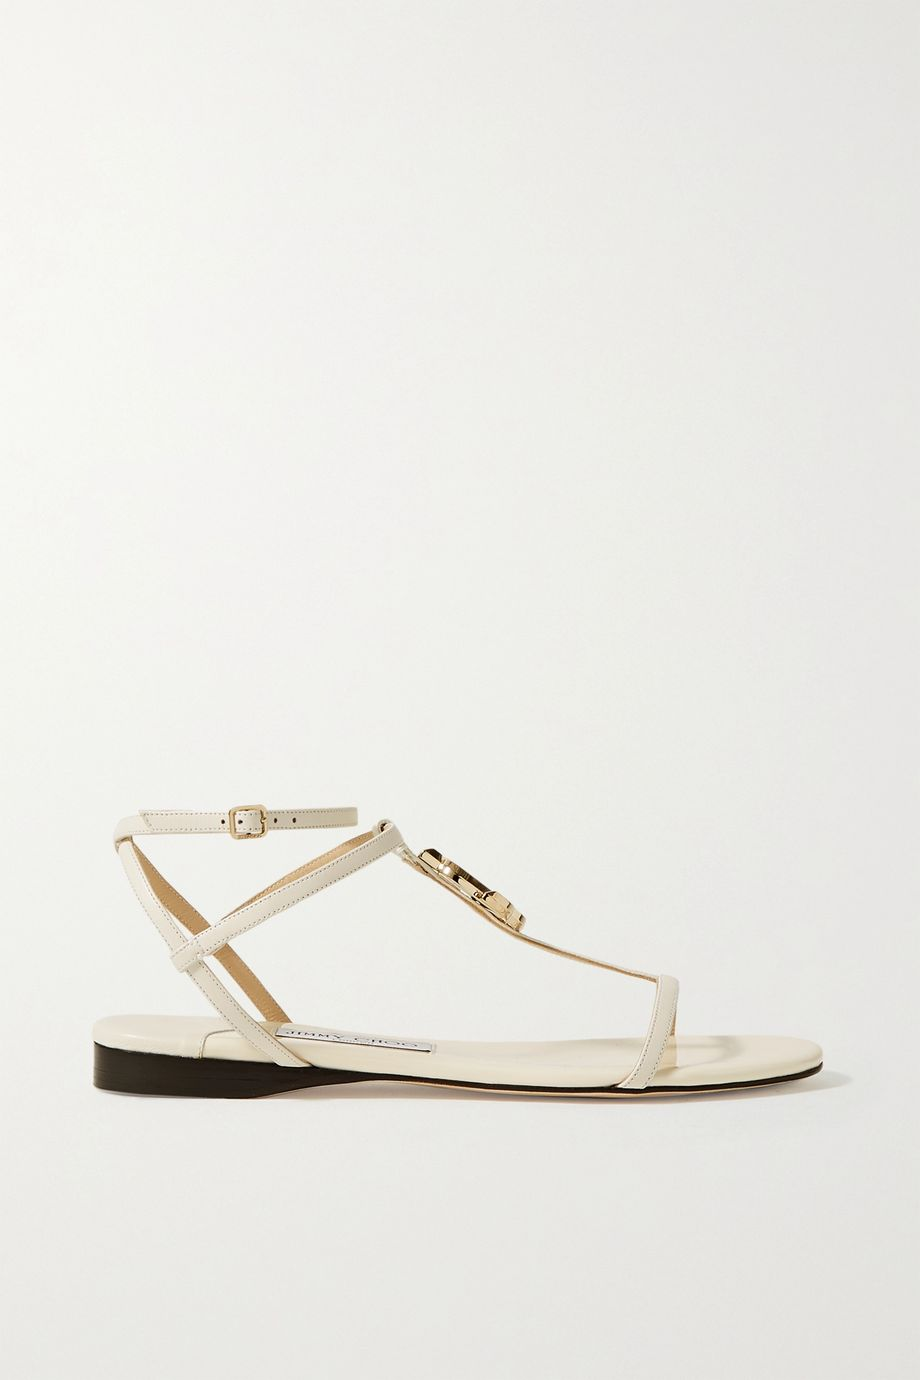 Jimmy Choo Alodie logo-embellished leather sandals